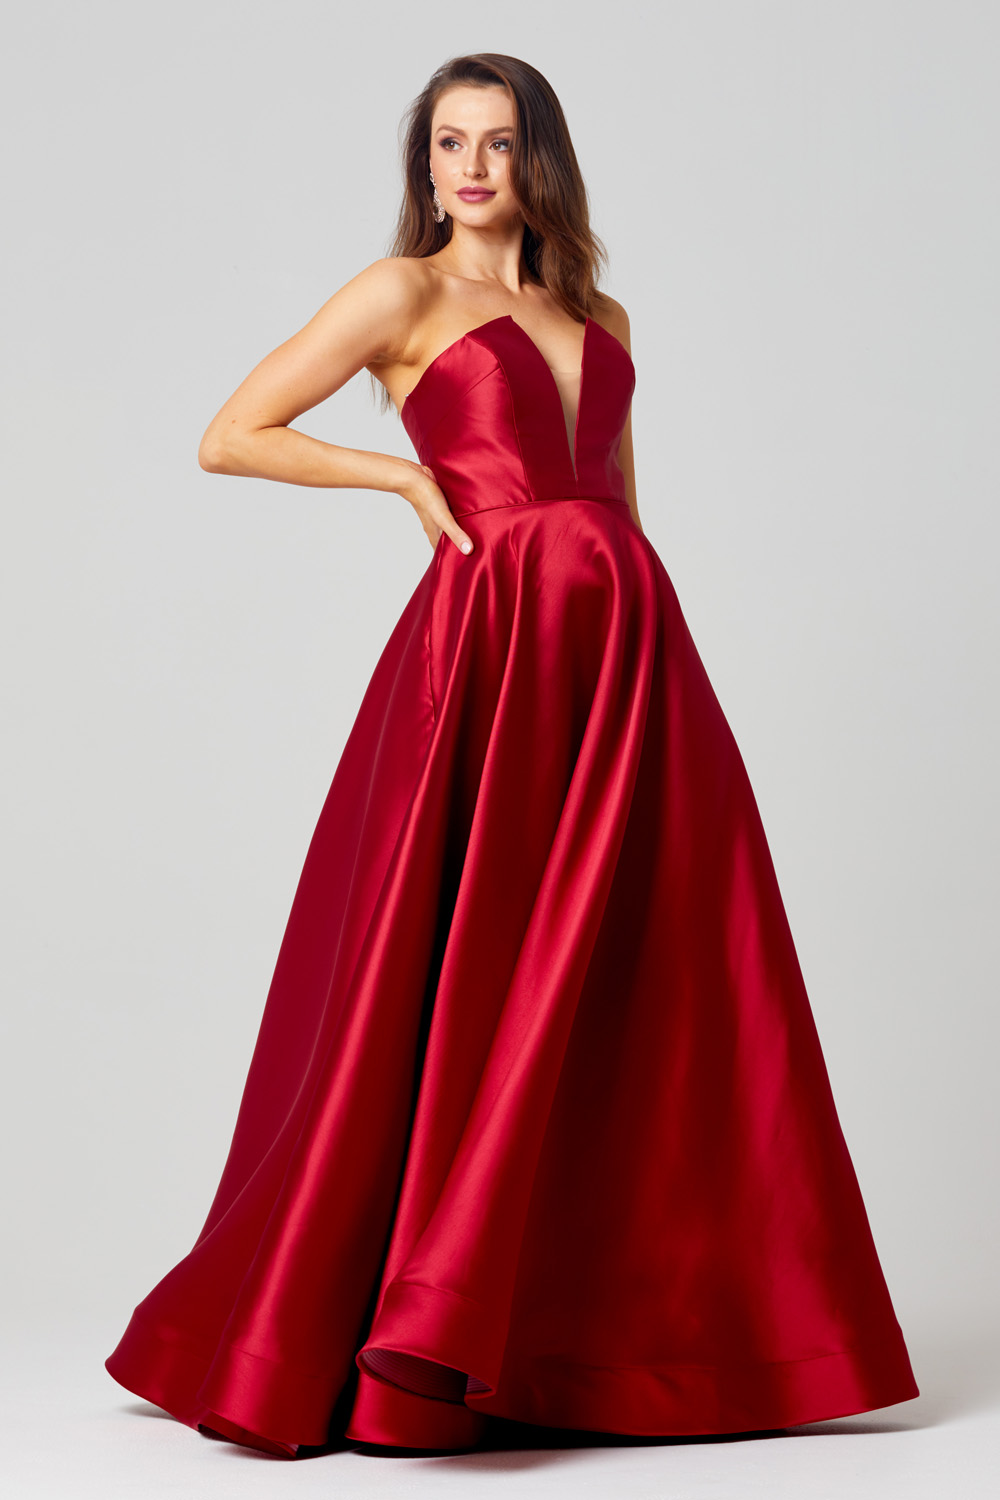 PO852 Emma formal dress side angle